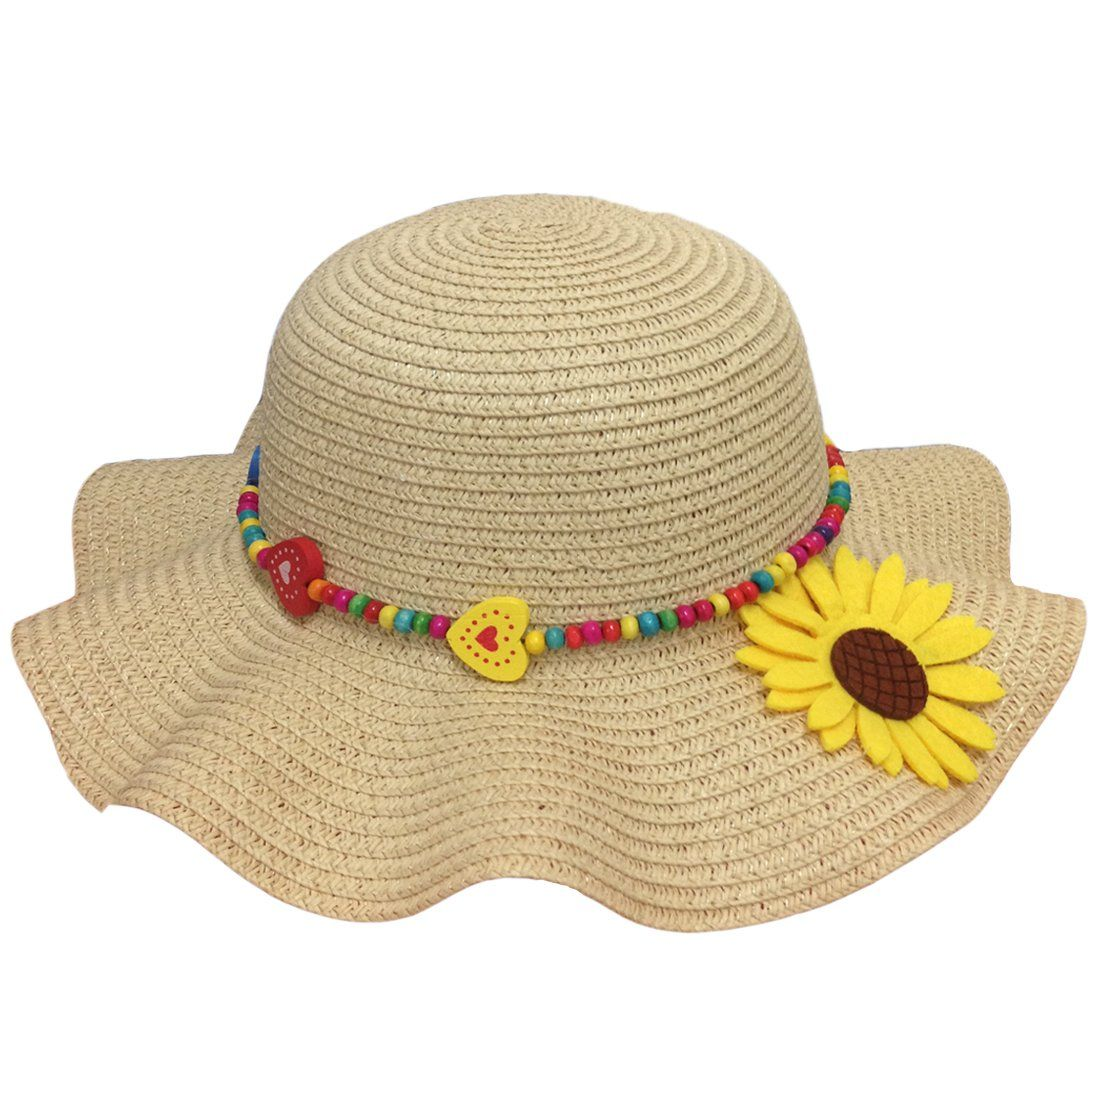 JTC Little Girls Multi-colors Sun Hat with Strap ( 7). Material  100%  straw. Head Circumference 51-52cm 043526374b0